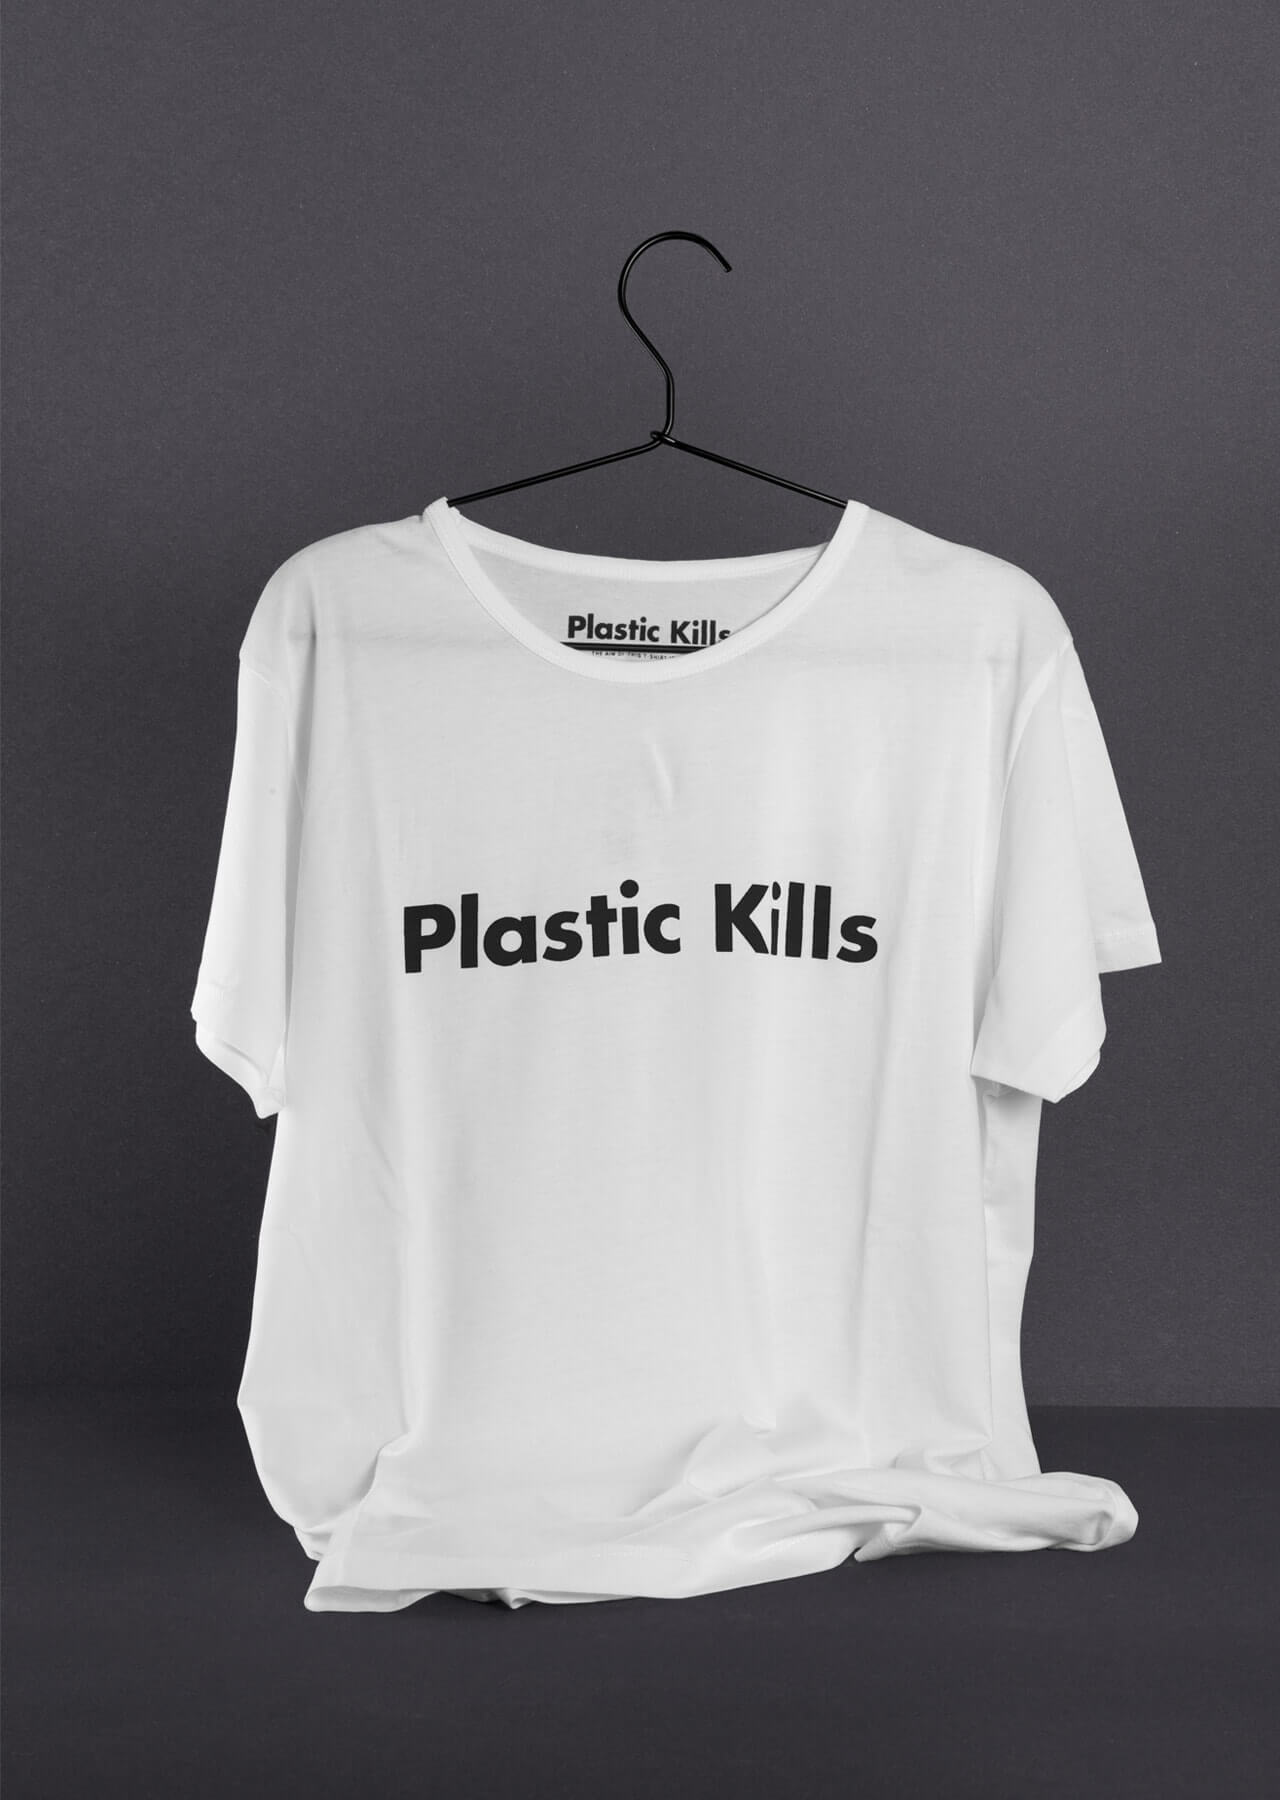 Plastic Kills